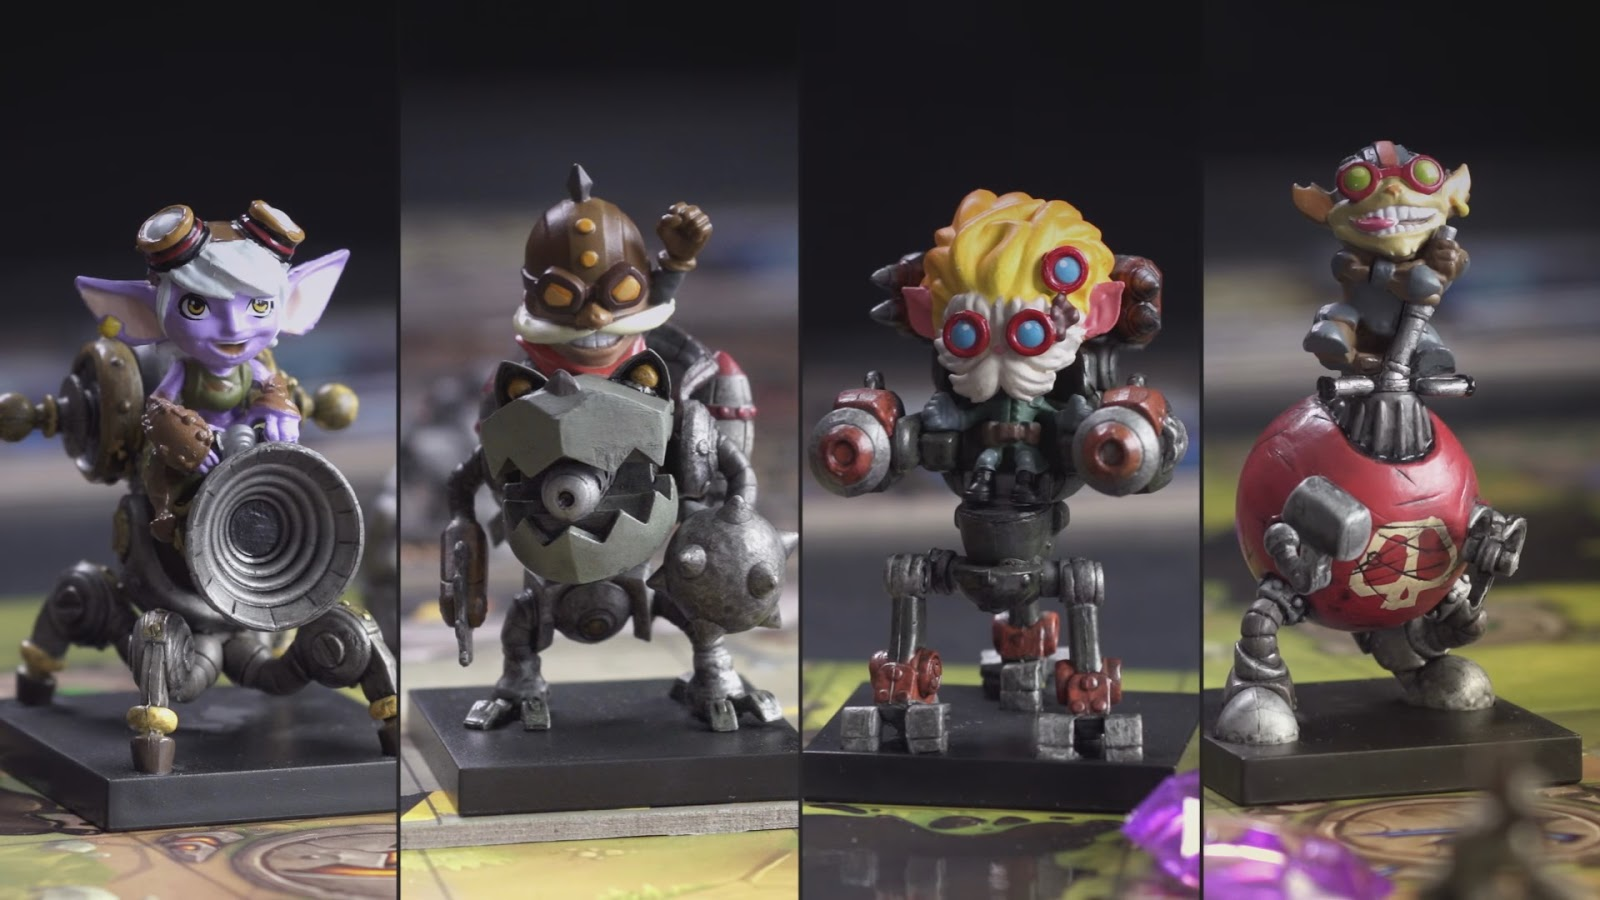 The four fully painted mechs